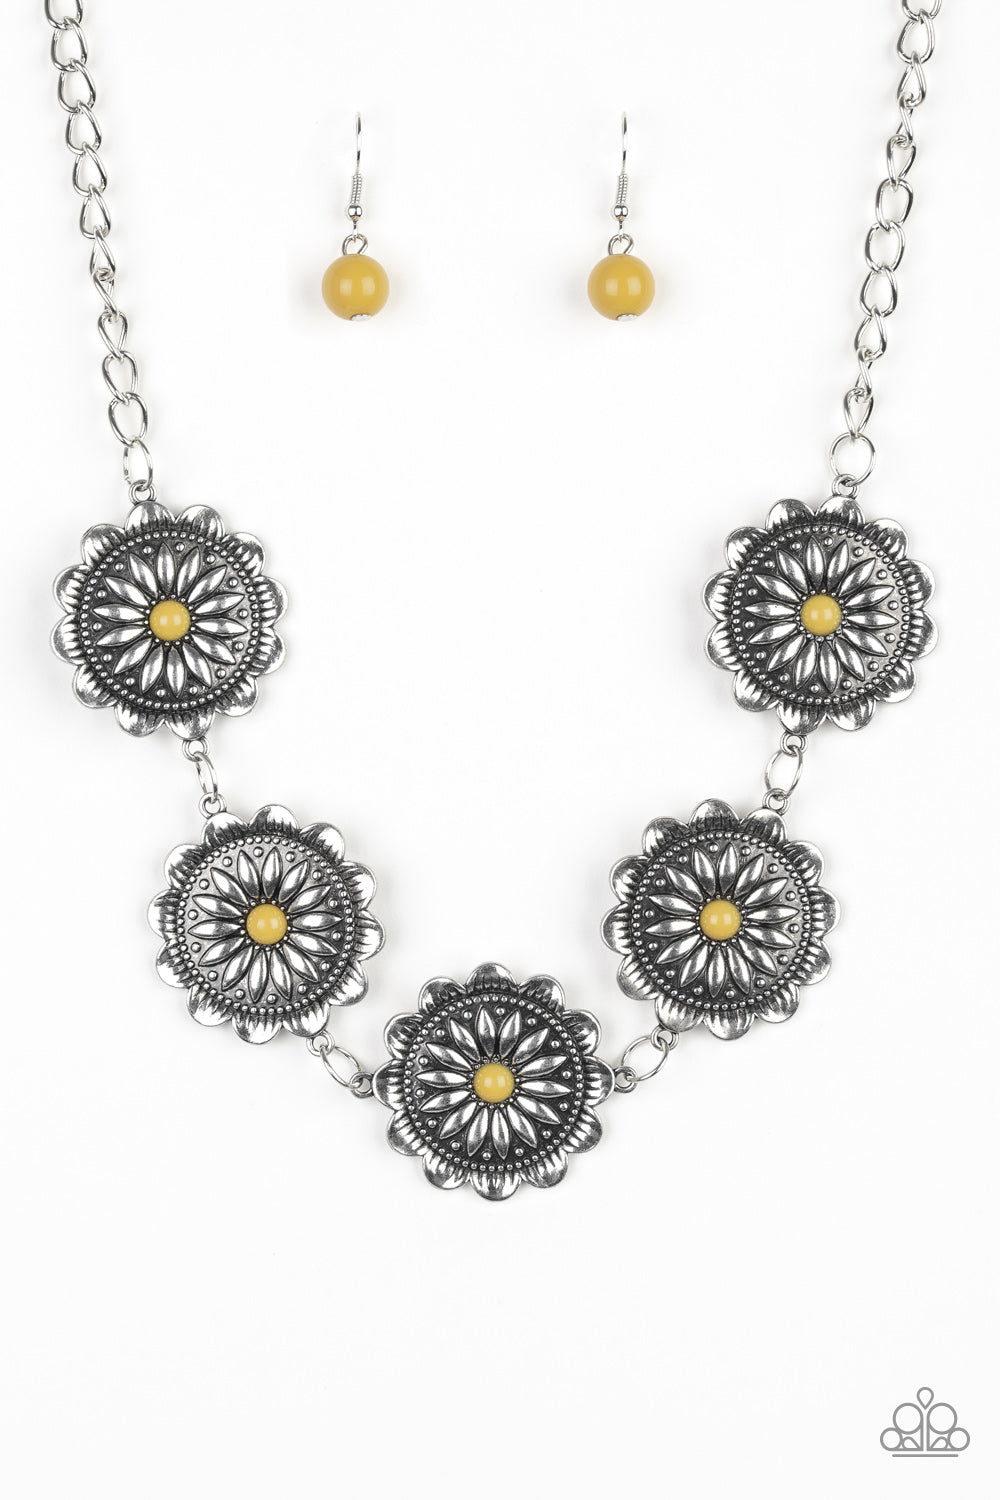 Paparazzi Me-dallions, Myself, and I Yellow Necklace & Earrings Set